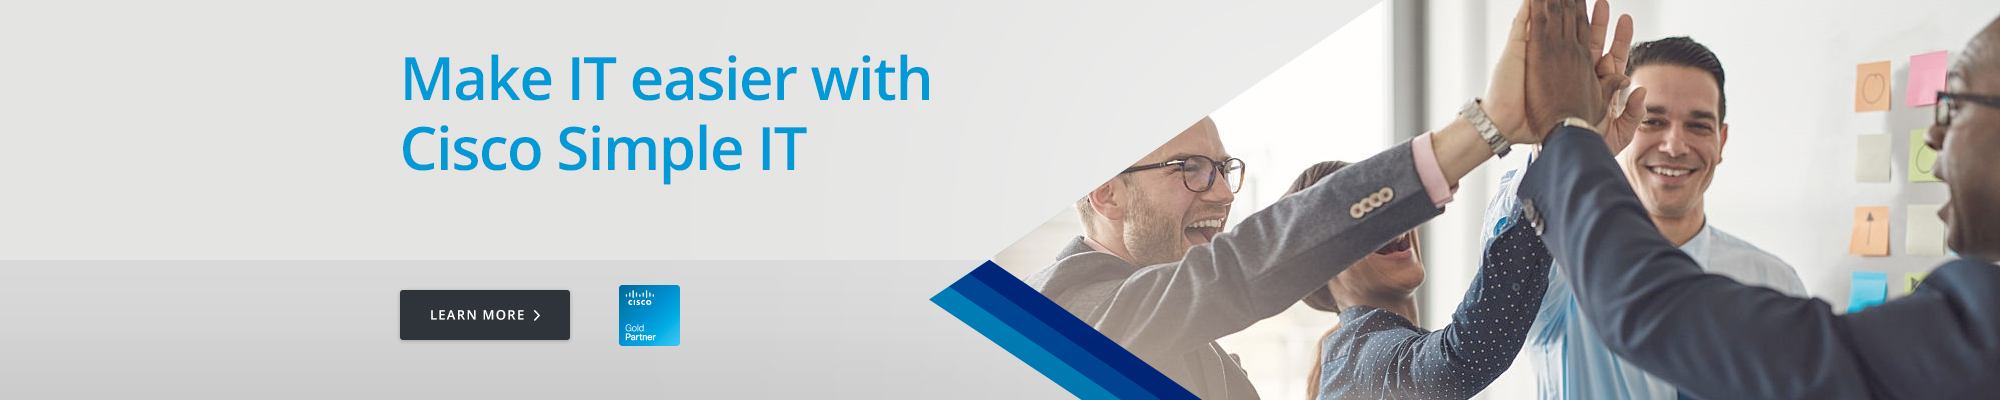 Make IT easier with Cisco Simple IT